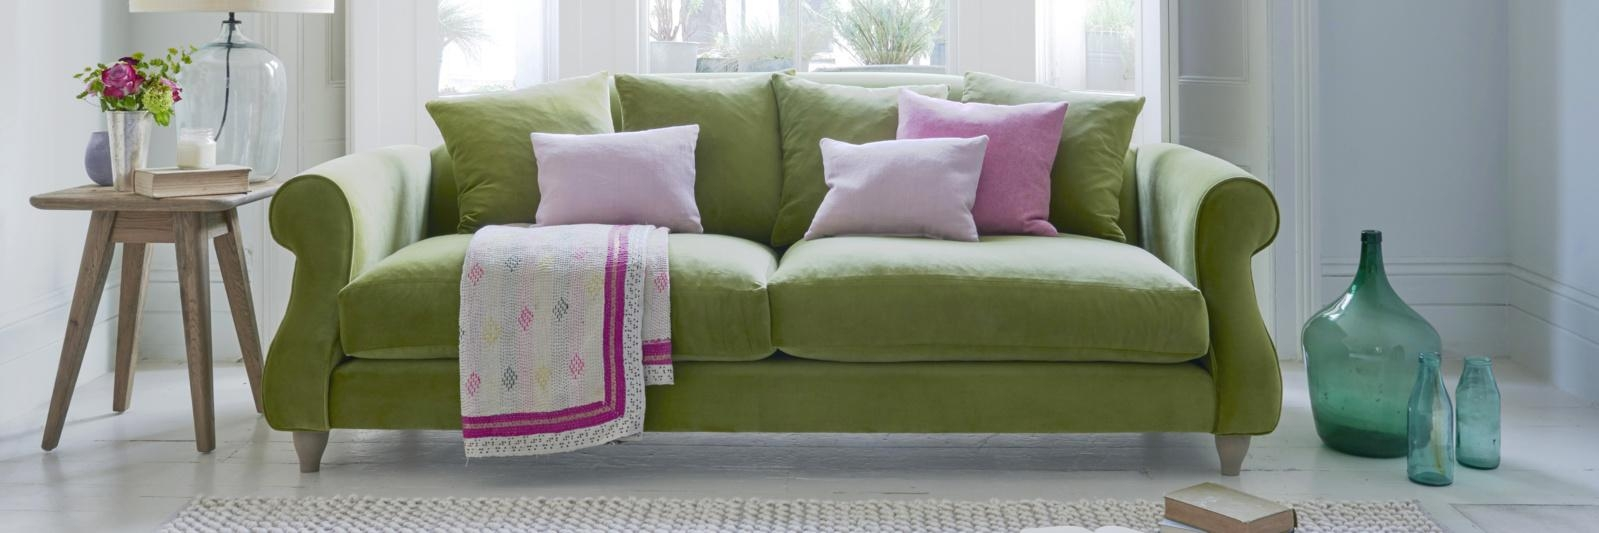 Green Sofas | Seriously Comfy Sofas | Loaf Regarding Green Sofas (Image 11 of 20)